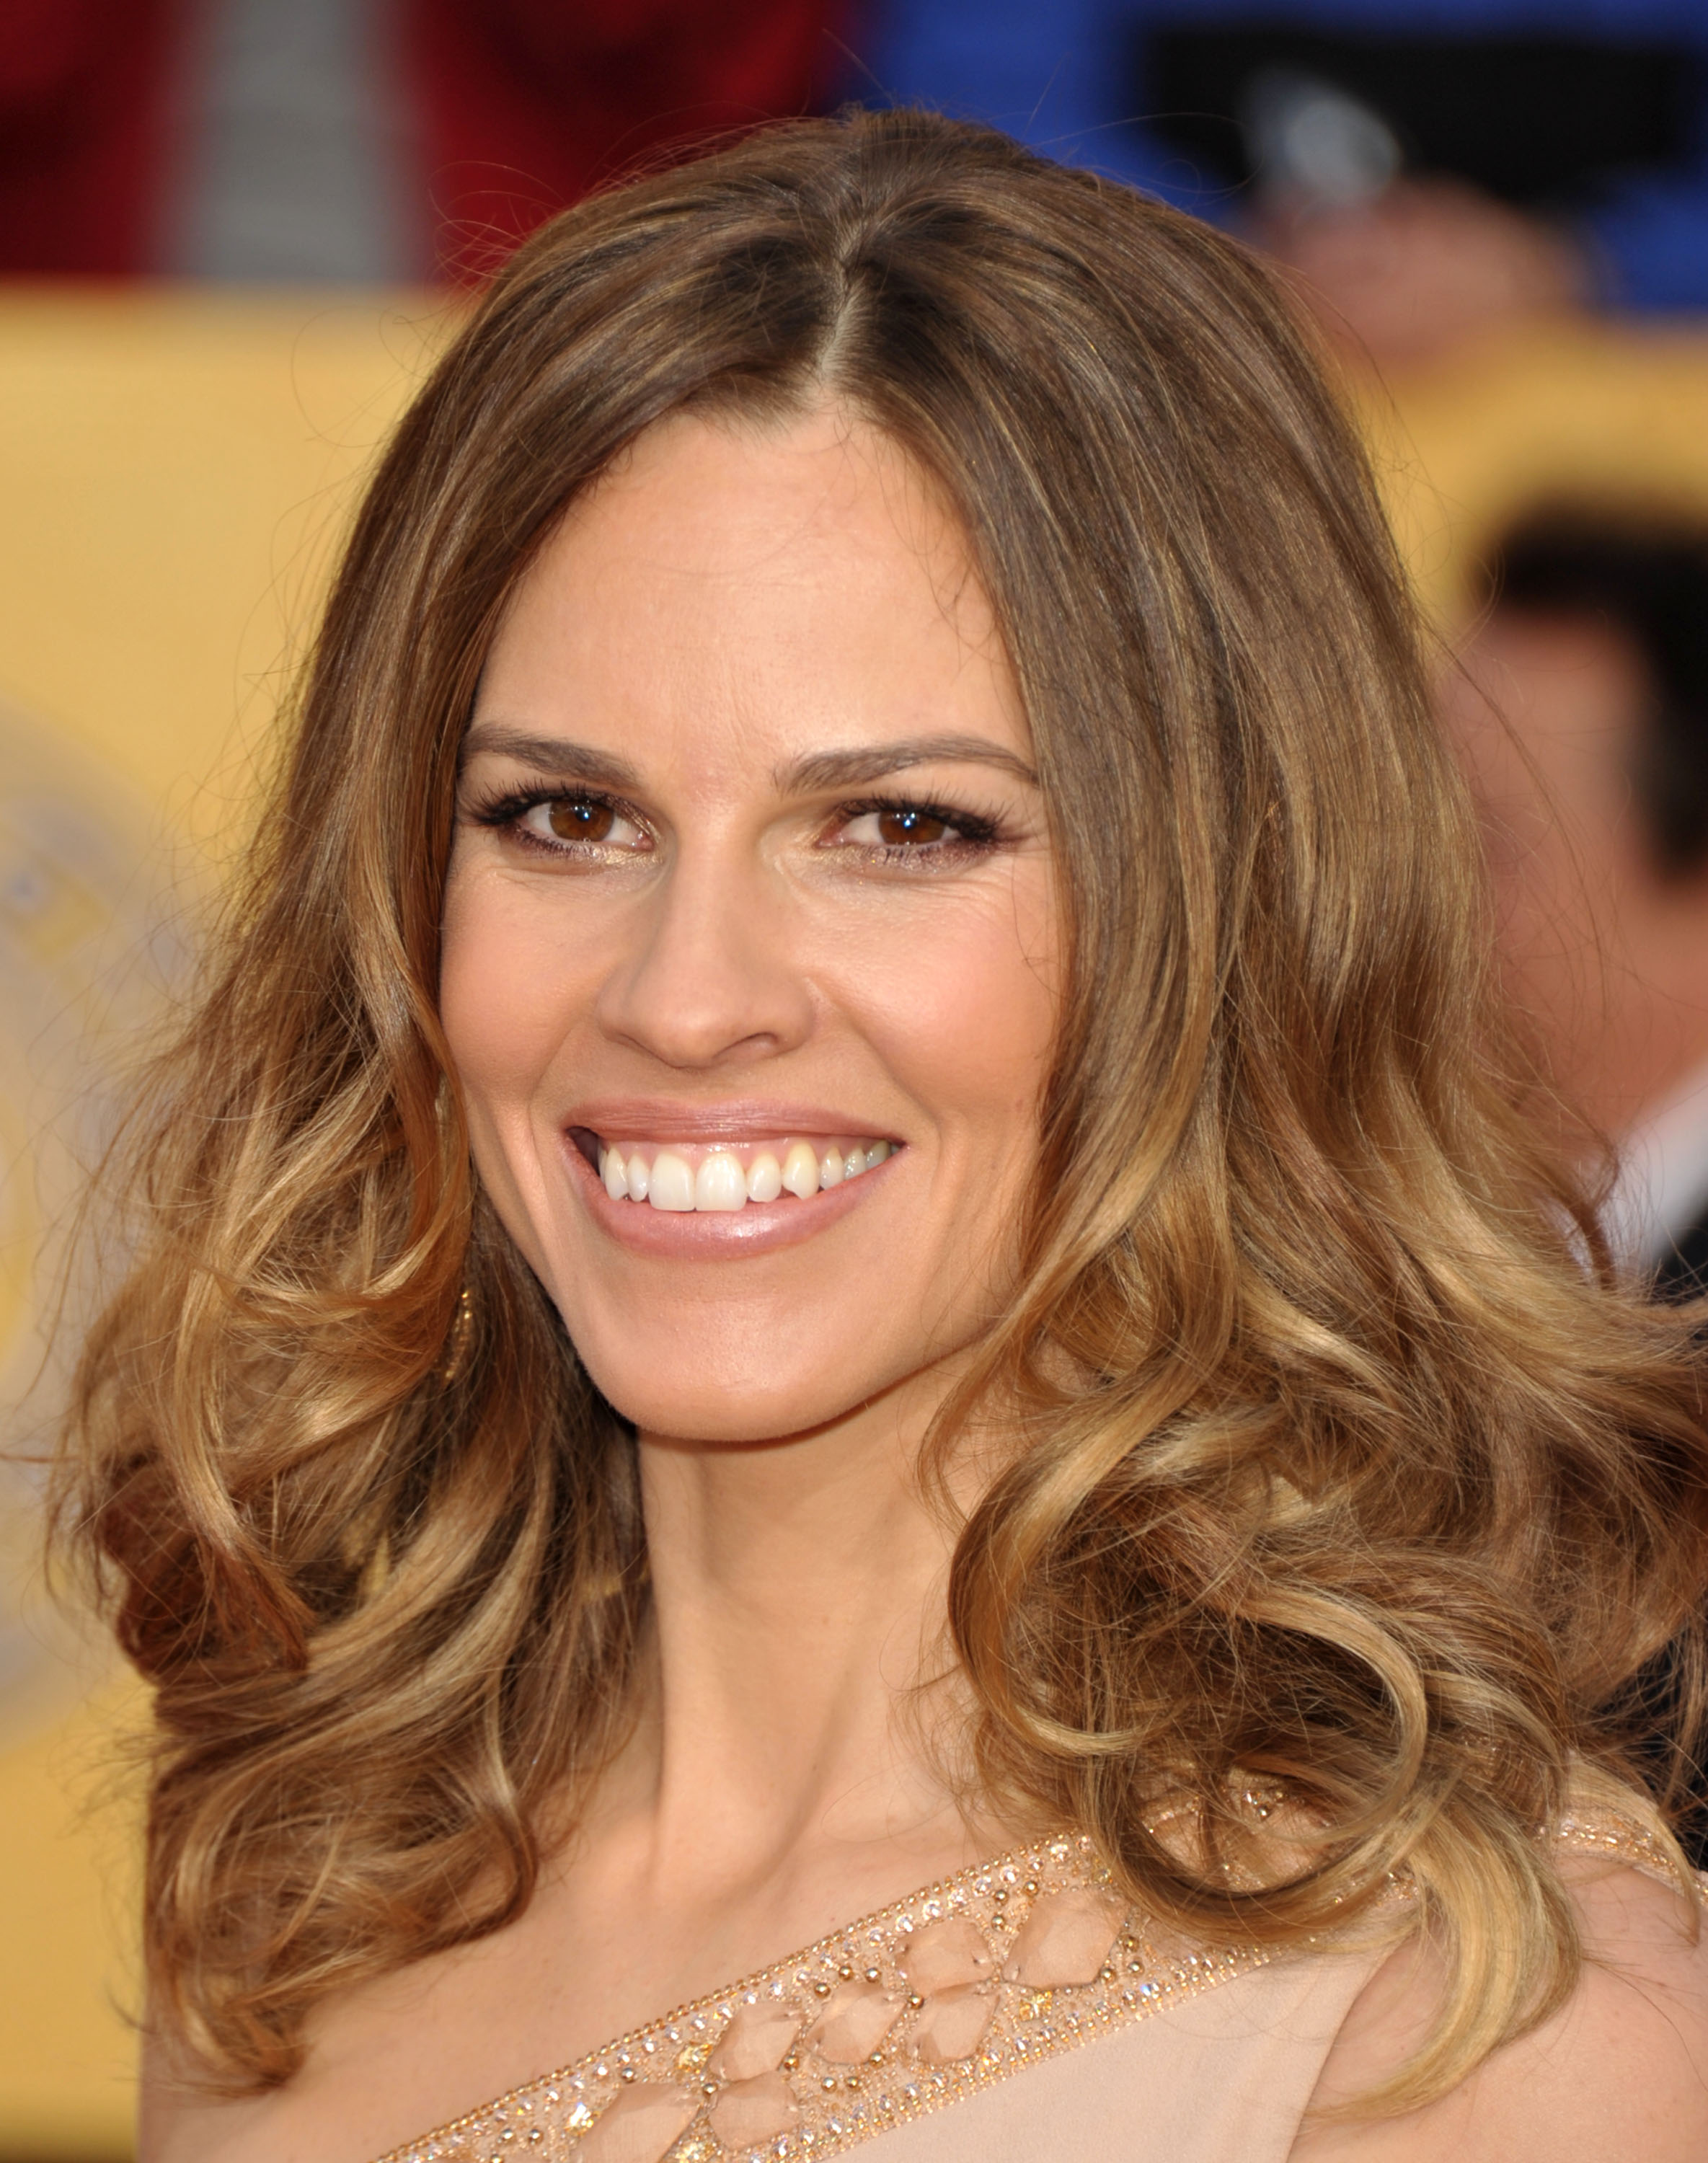 Hilary Swank Photo 254 Of 419 Pics Wallpaper Photo